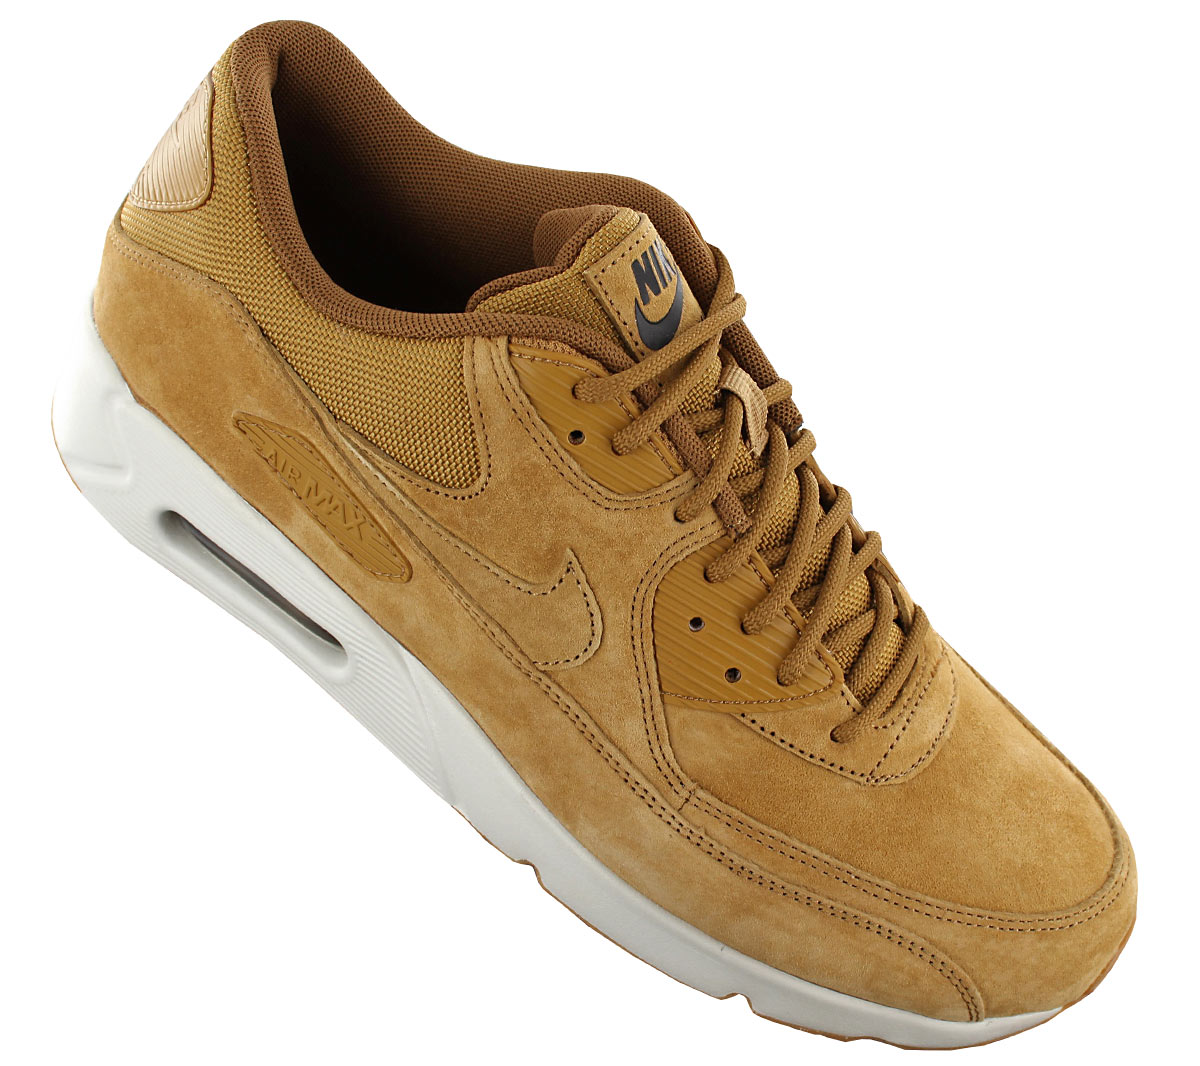 Details about Nike air max 90 Ultra 2.0 Leather Ltr Men's Sneaker 924447 700 Shoes Braun New